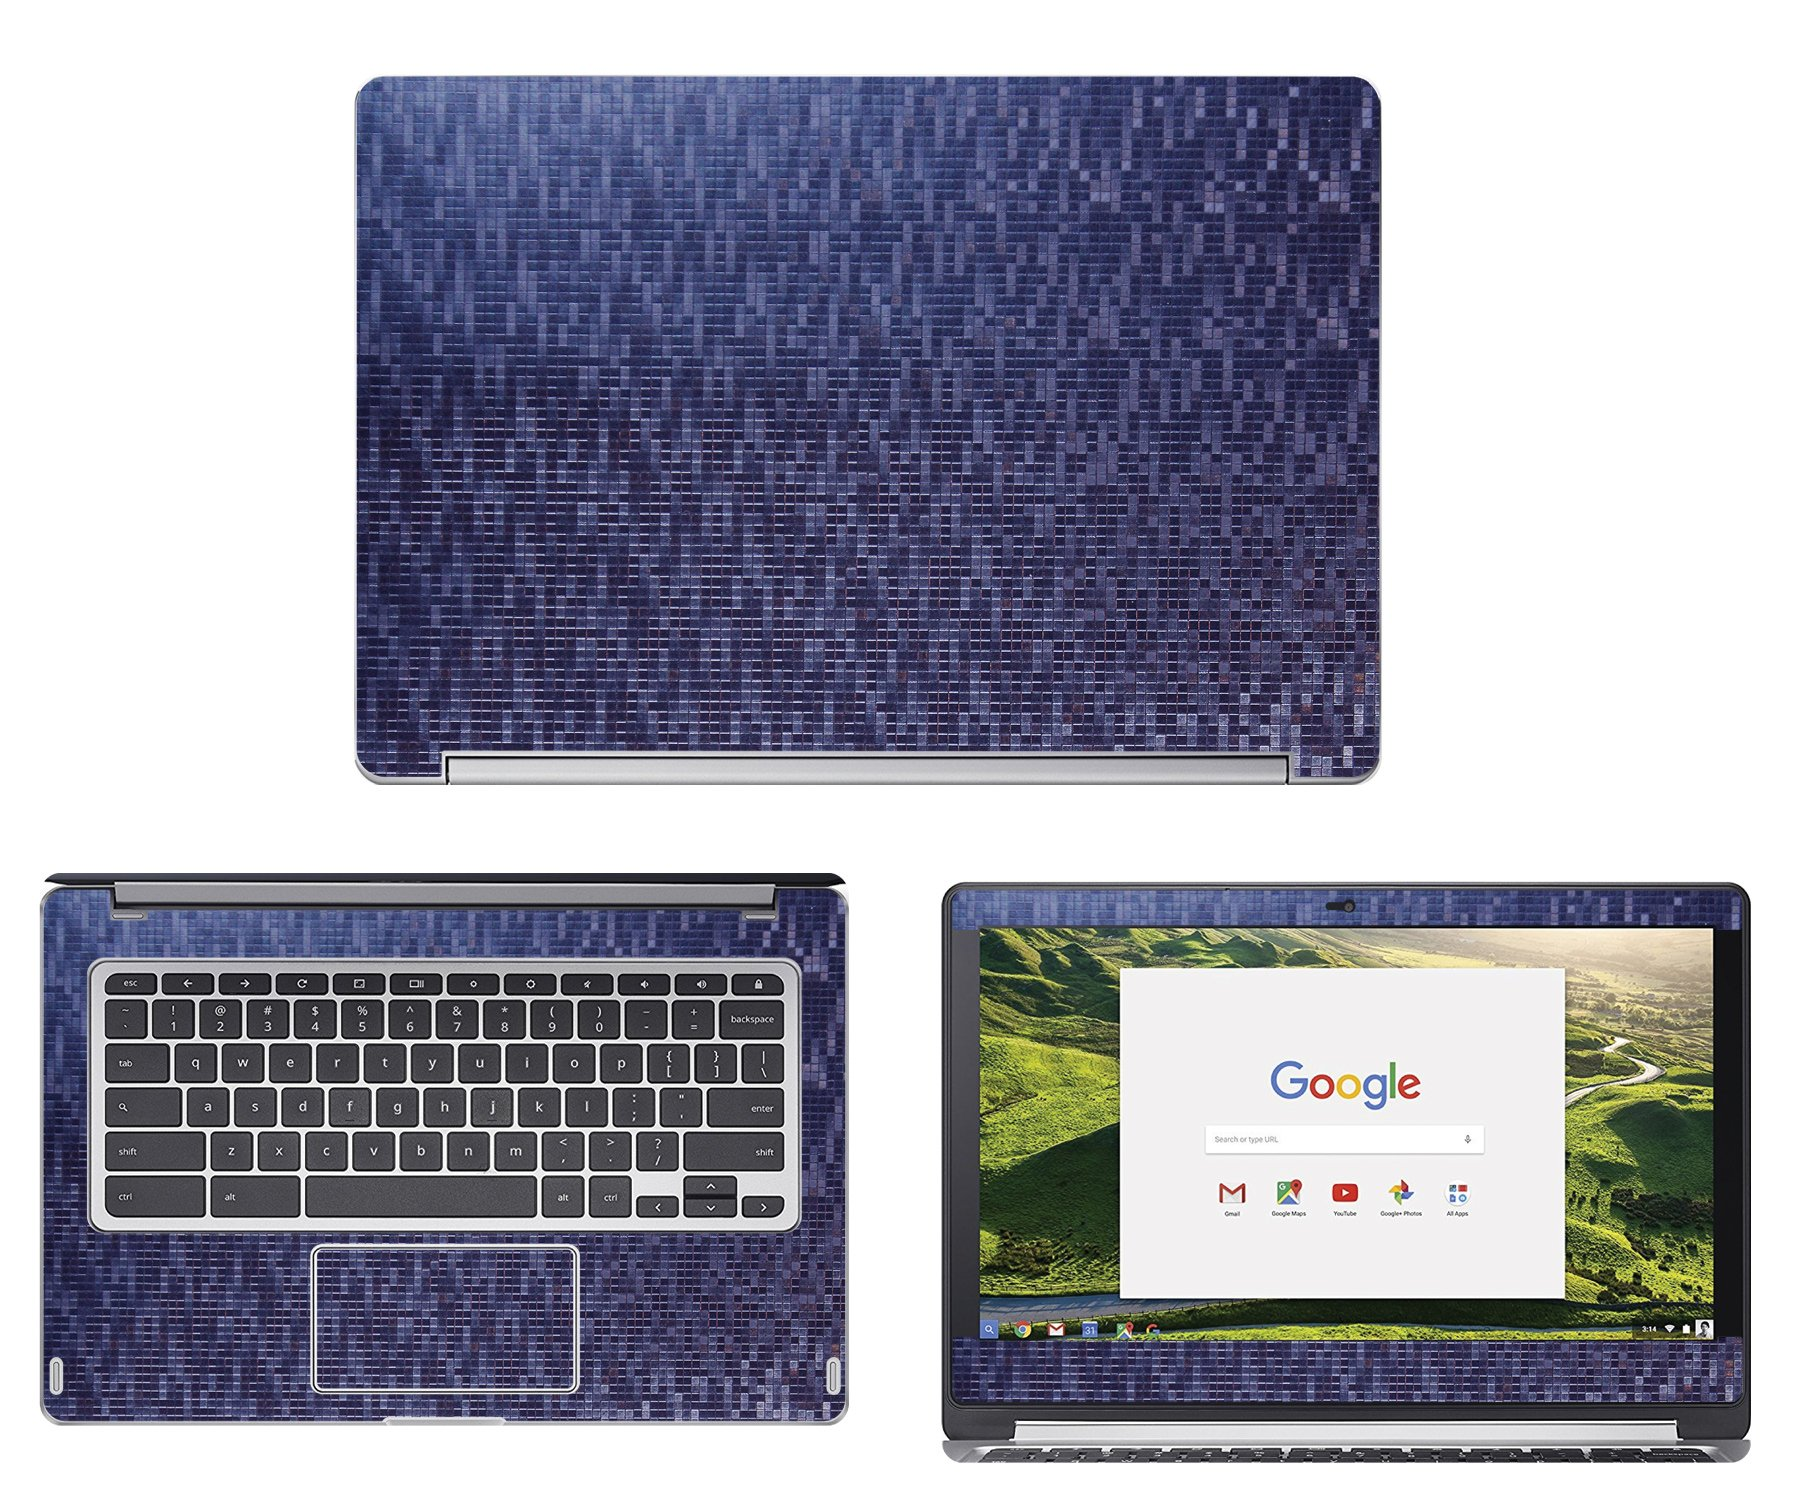 Decalrus - Protective decal for Acer ChromeBook R13 CB5-312T (13.3'' Screen) Laptop Chameleon Mosaic pattern Blue to Purple Texture skin skins decal wrap MOSacerChrmbkCB5_312Blue